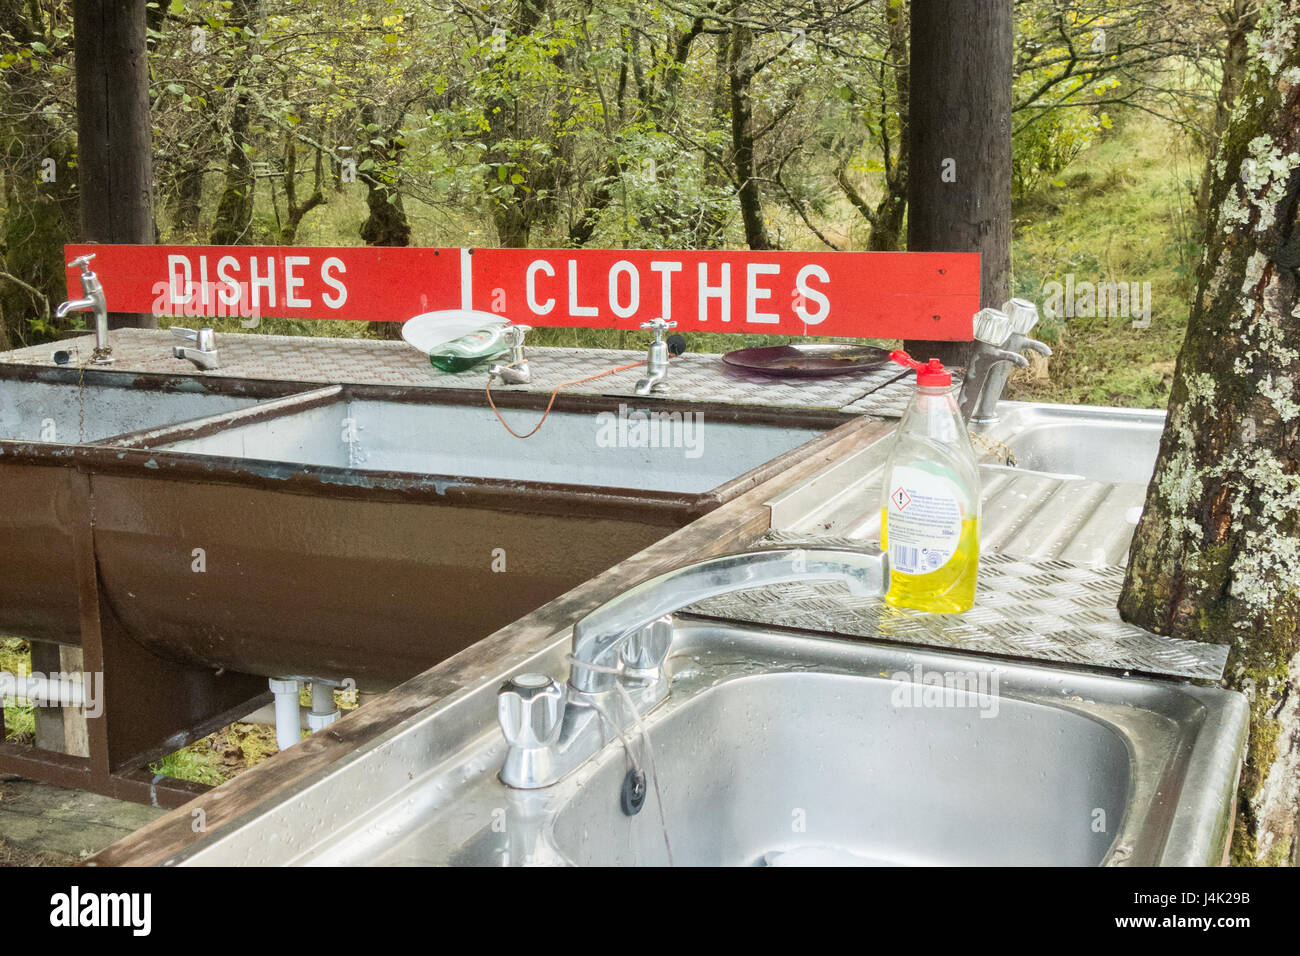 washing dishes and clothes by hand - small basic campsite washing up facilities - Red Squirrel campsite, Glencoe, - Stock Image